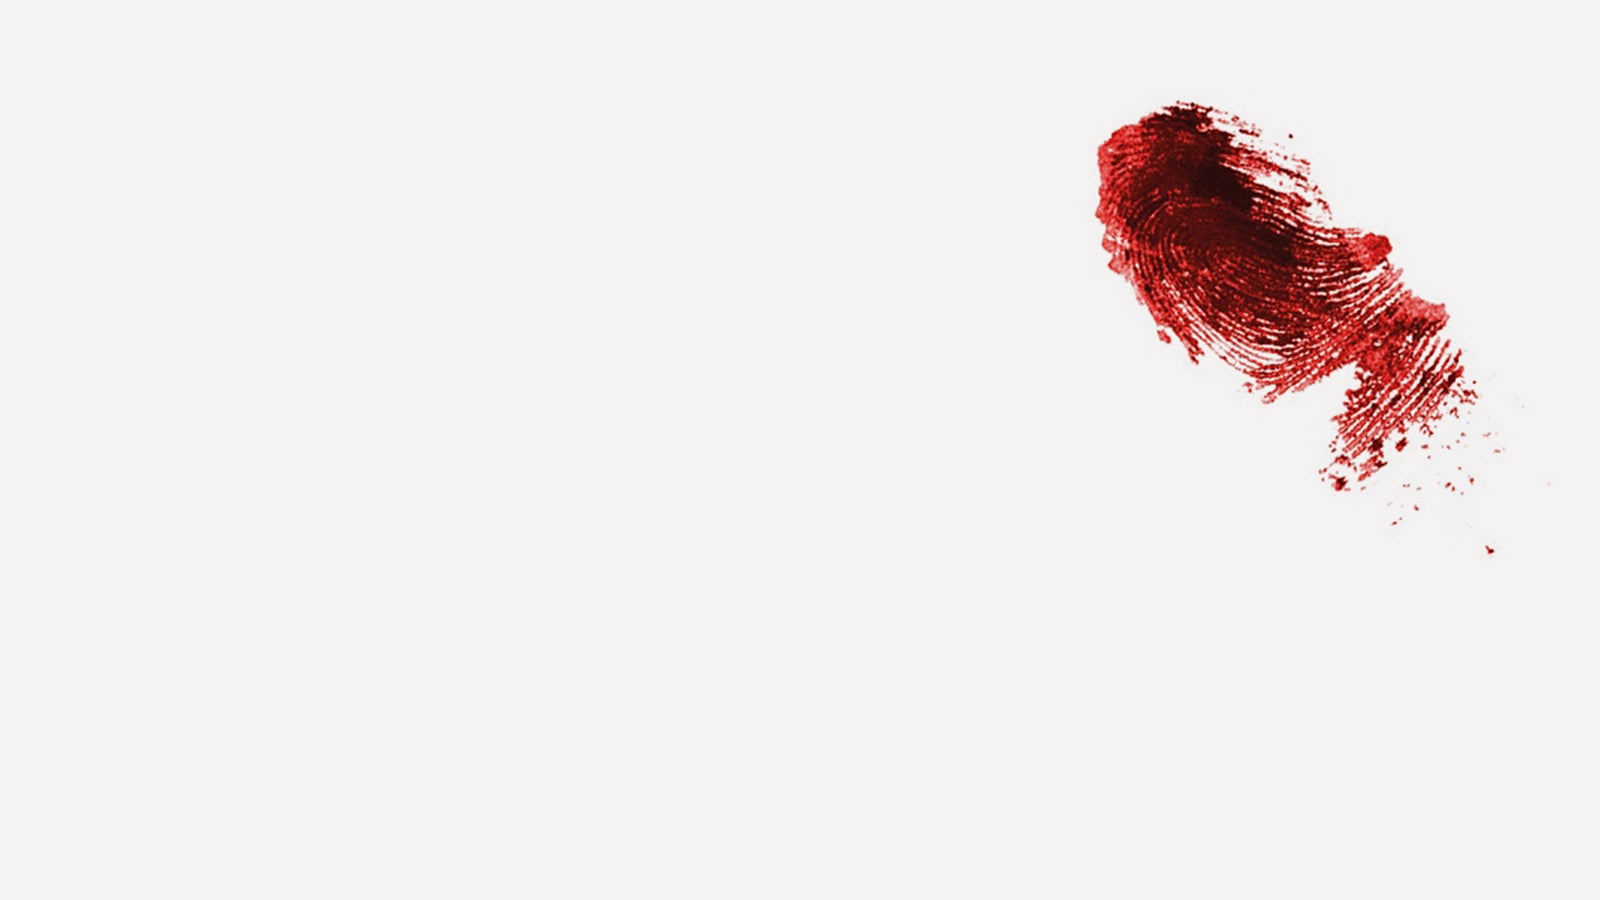 A thumbprint in blood on a plain white background